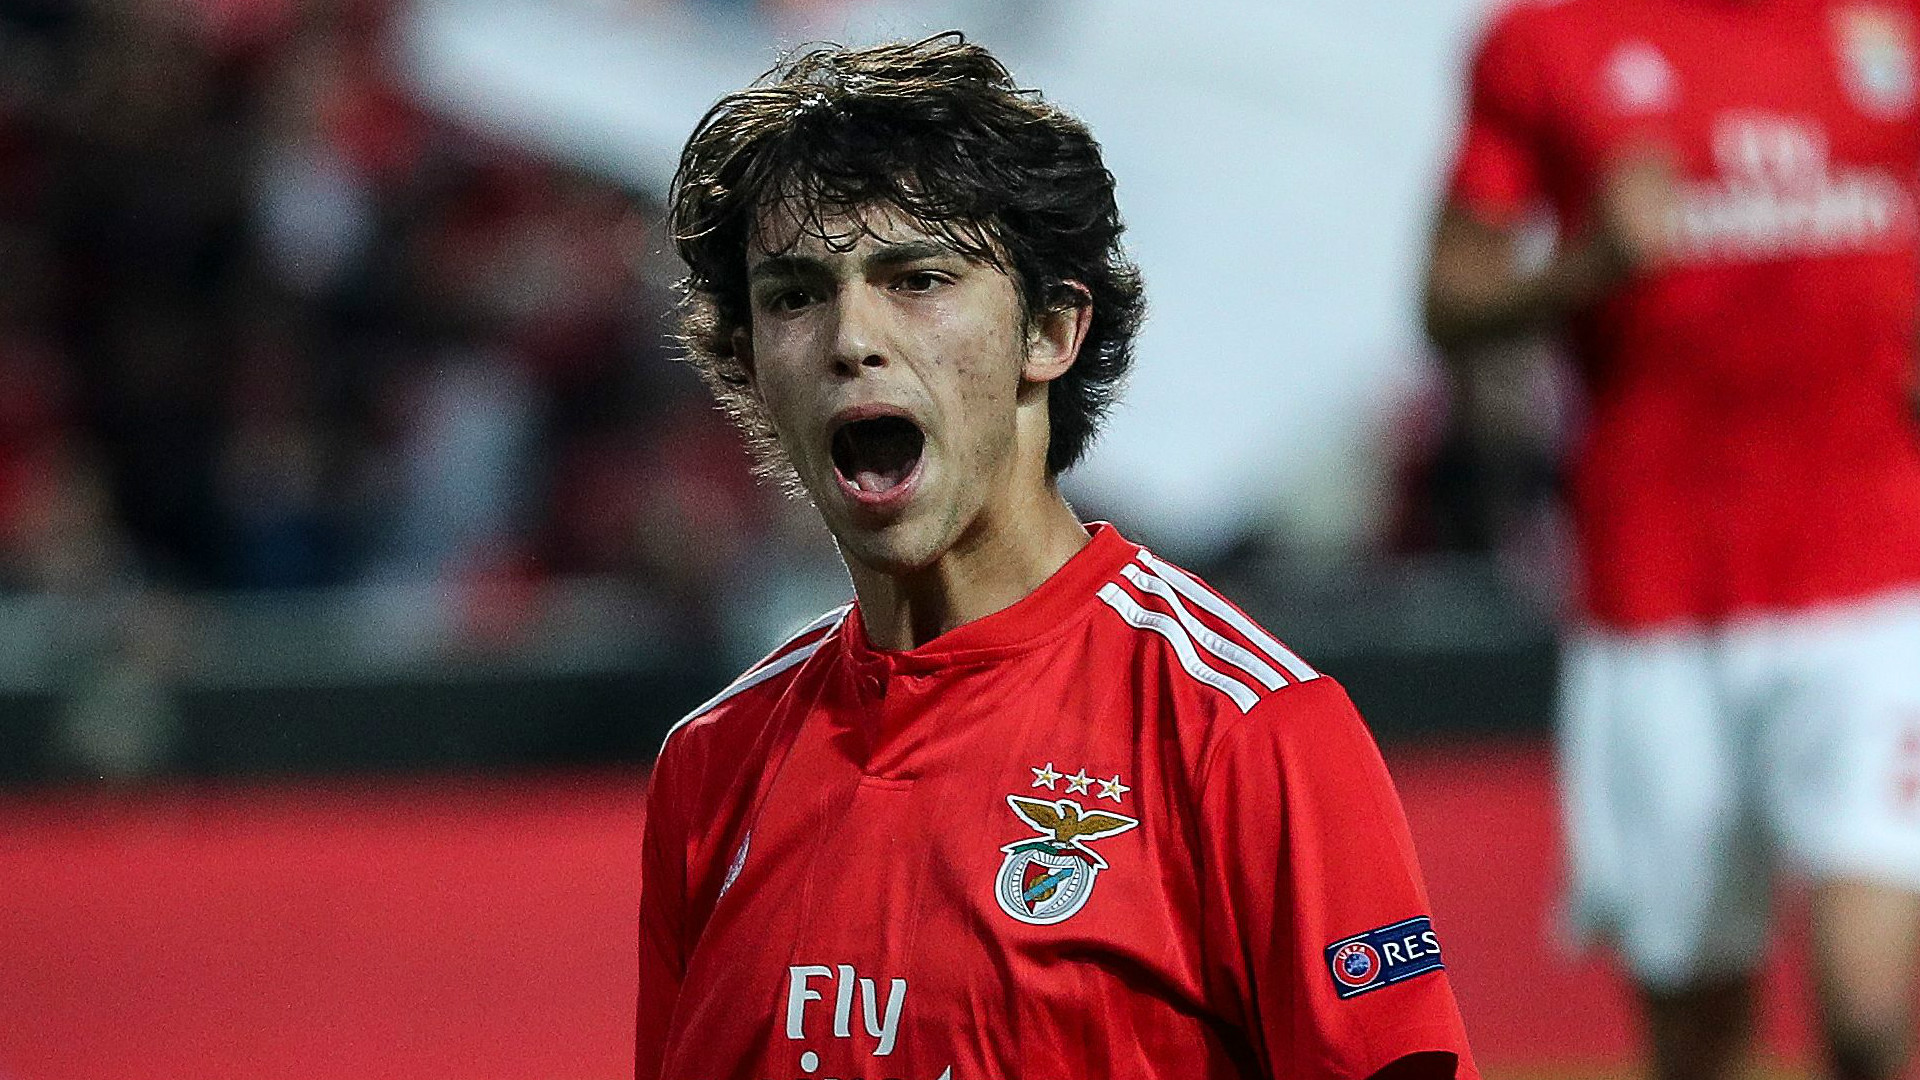 Atletico Madrid are sure on Joao Felix, that's why they paid €126m for him – David Villa